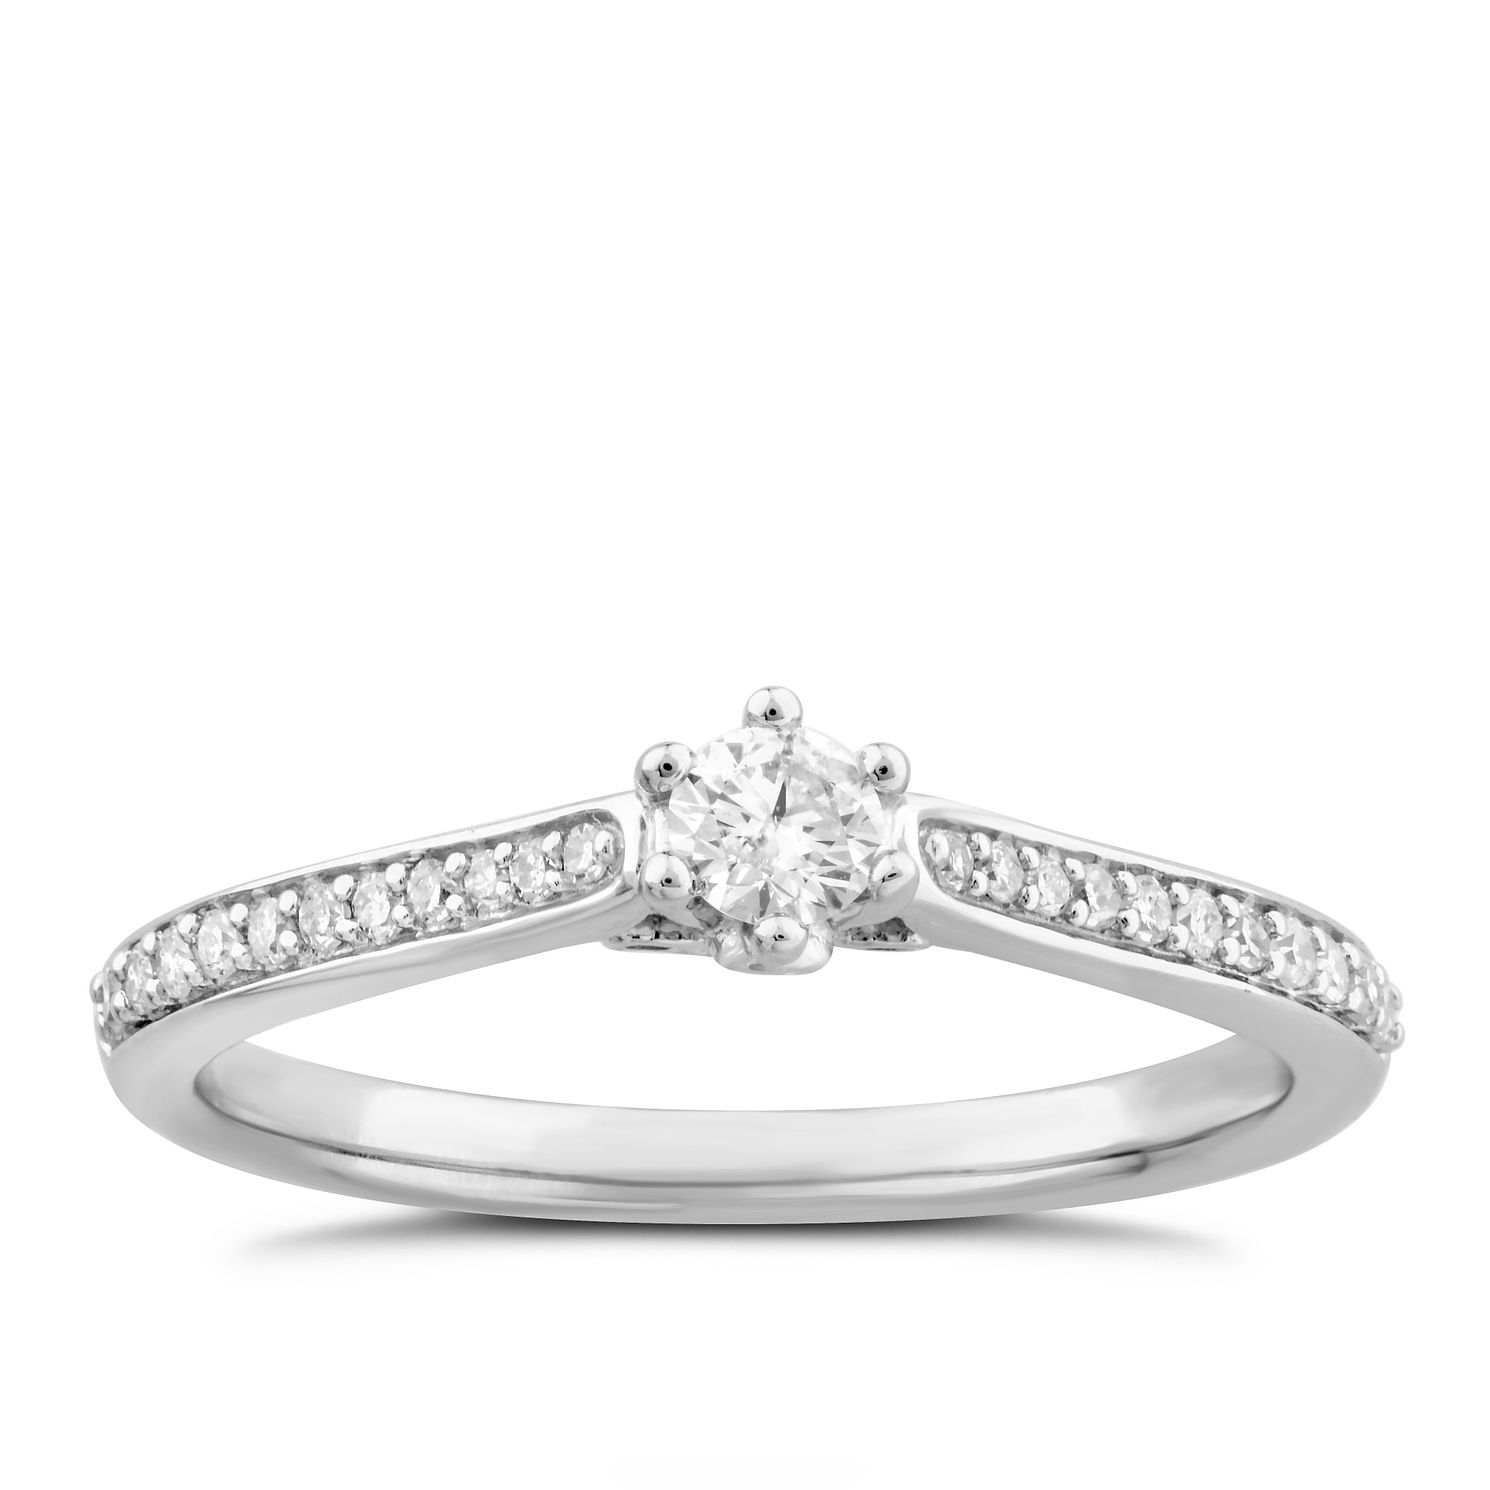 9ct White Gold 0.25ct Total Diamond Solitaire Ring - Product number 4993241